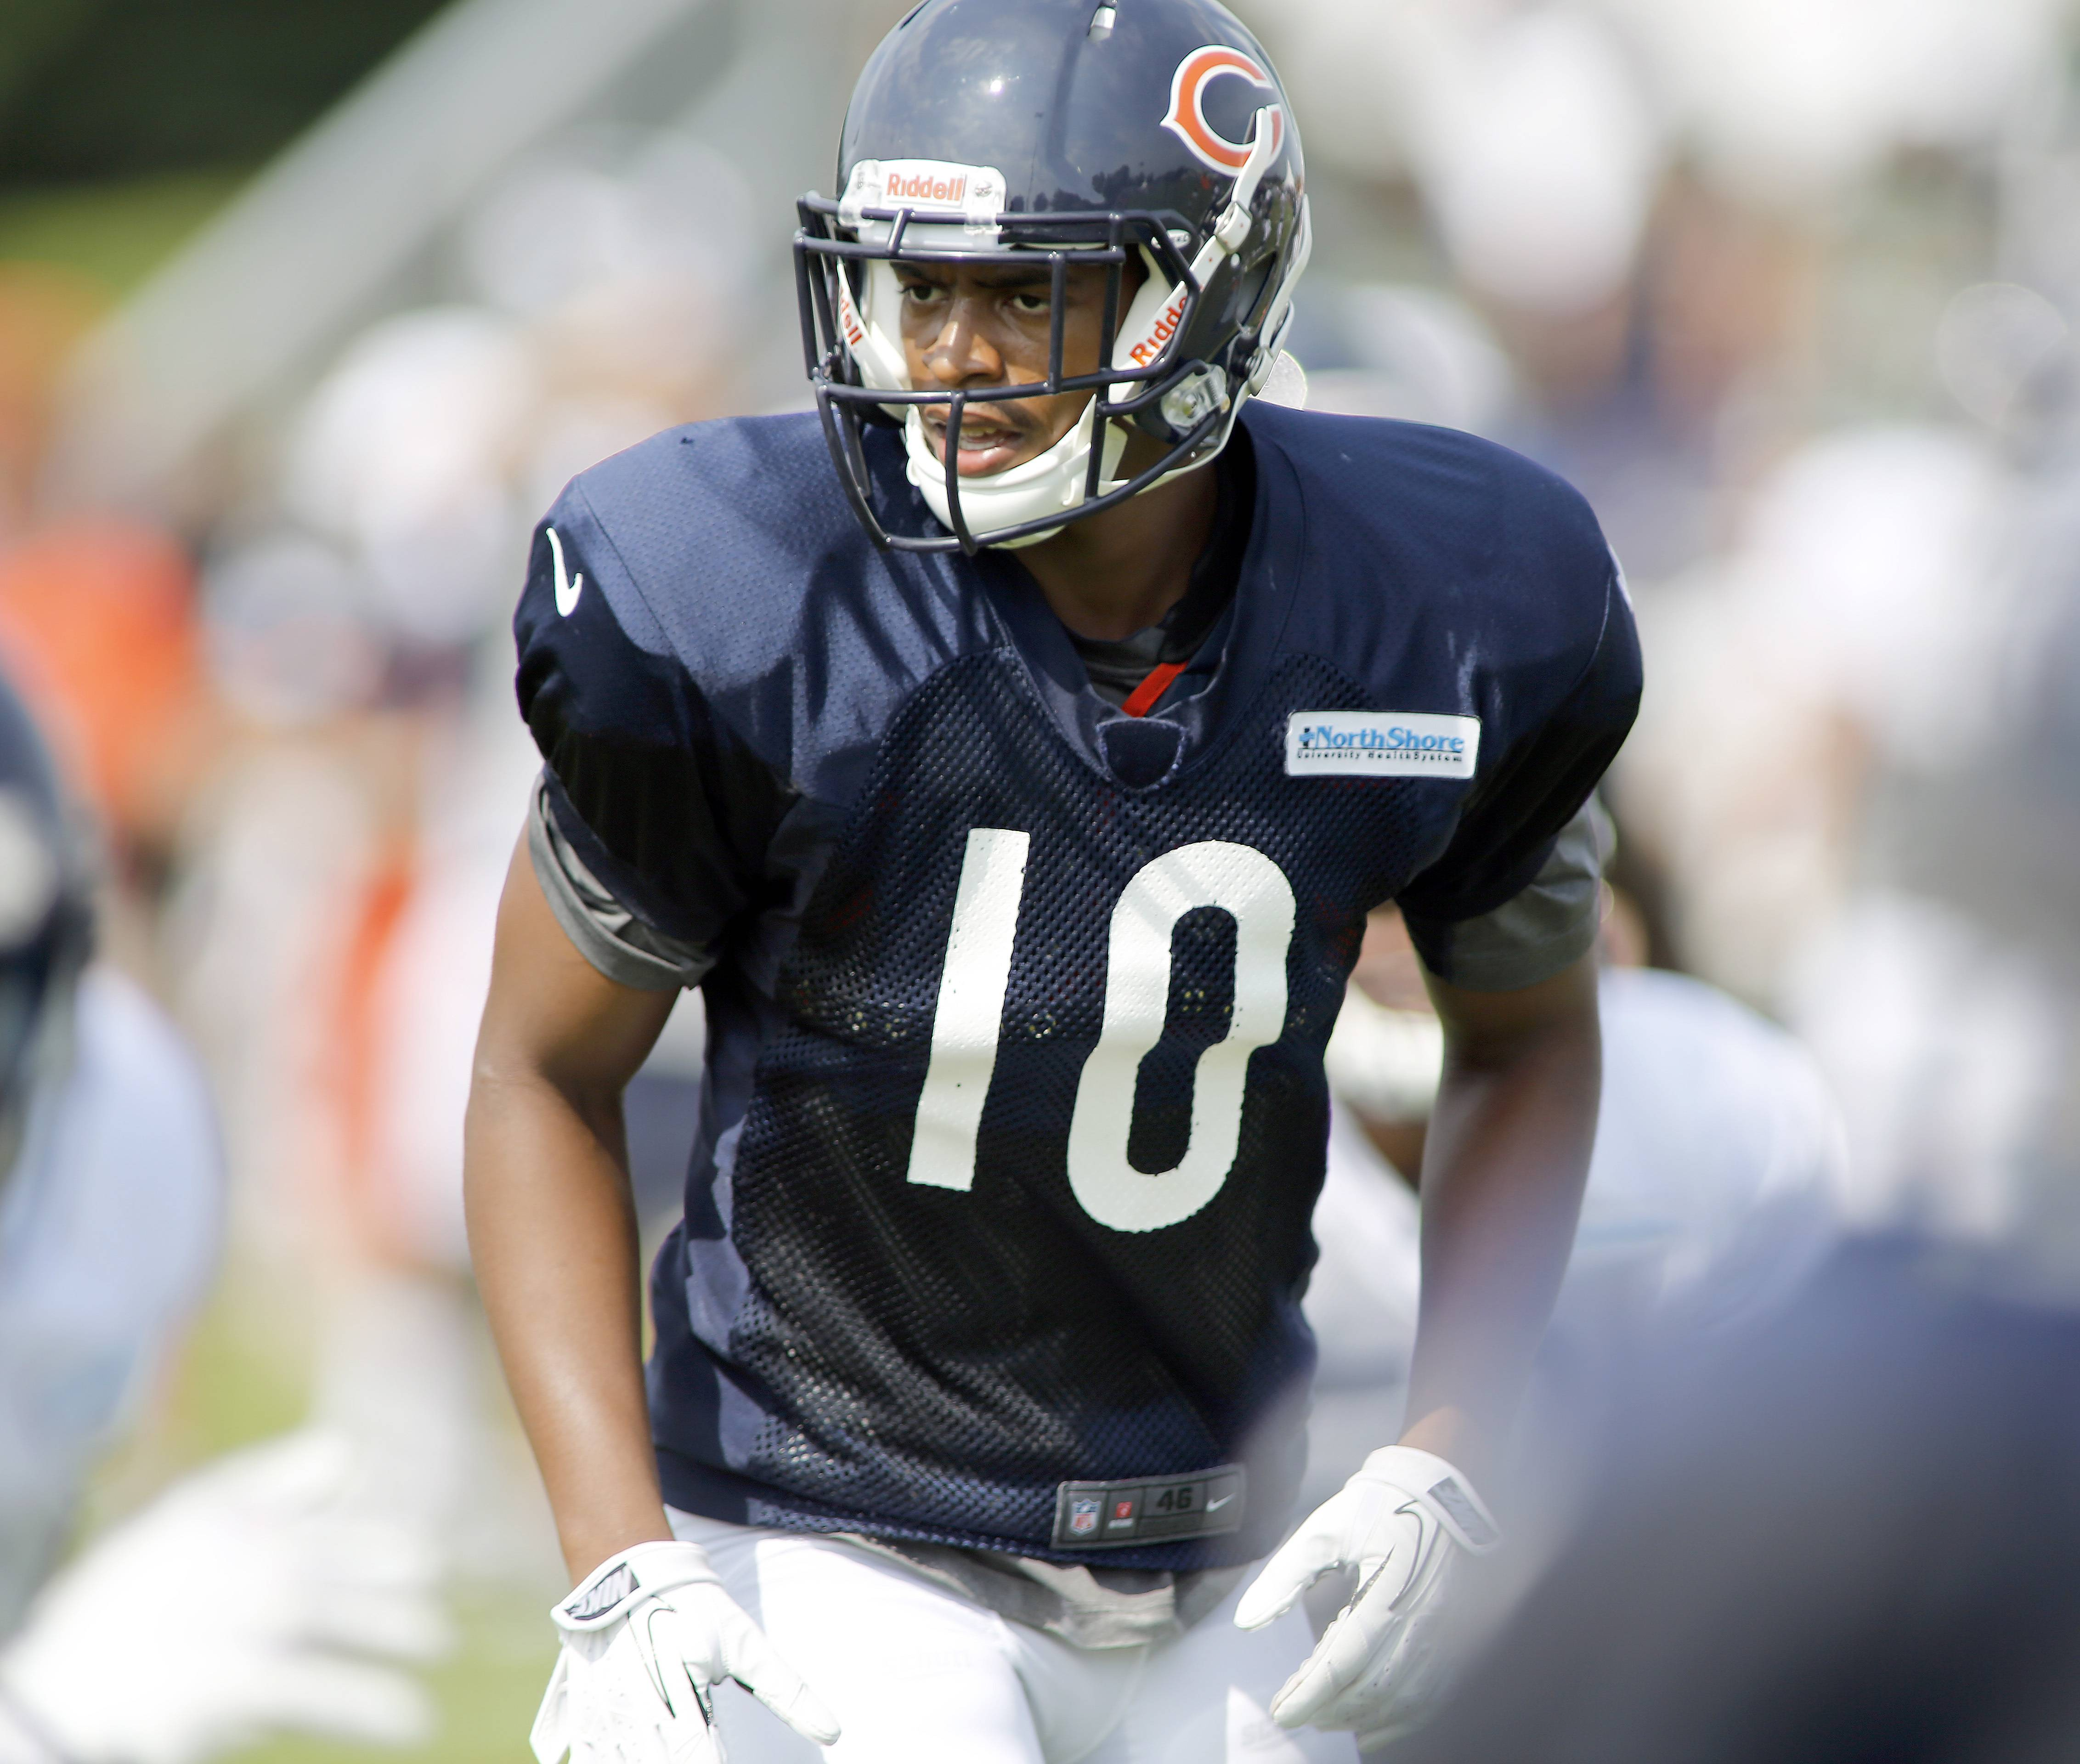 Chicago Bears wide receiver Marquess Wilson was in position to win a spot as the No. 3 wide receiver until he fractured a clavicle in practice on Monday.